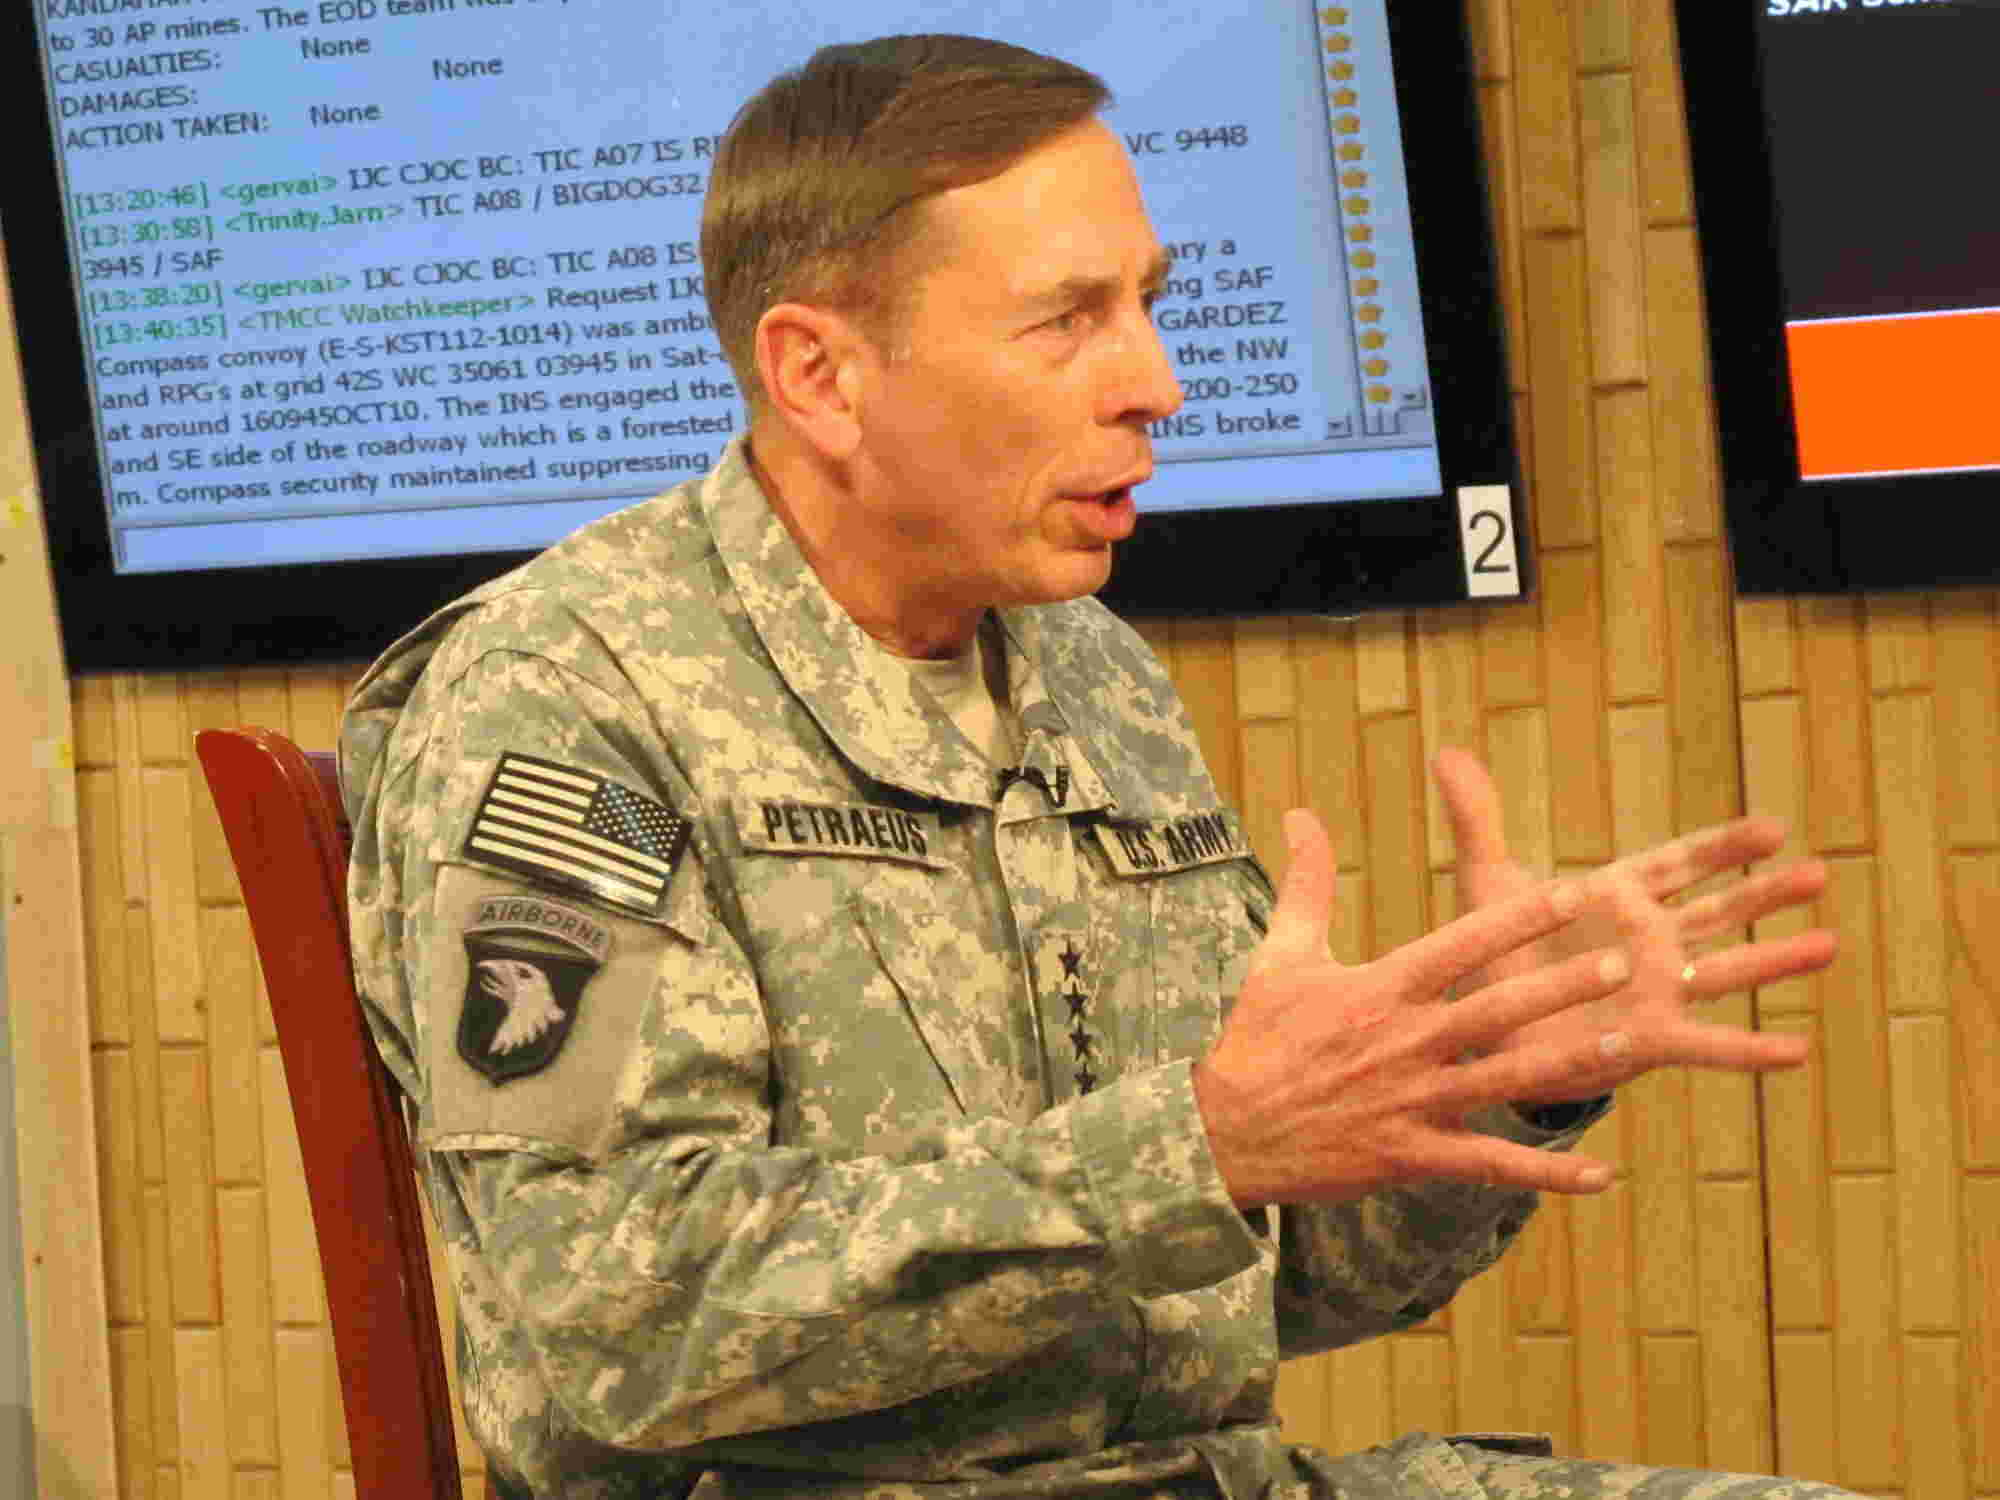 General David Petraeus explains, in answer to a question from Geraldo